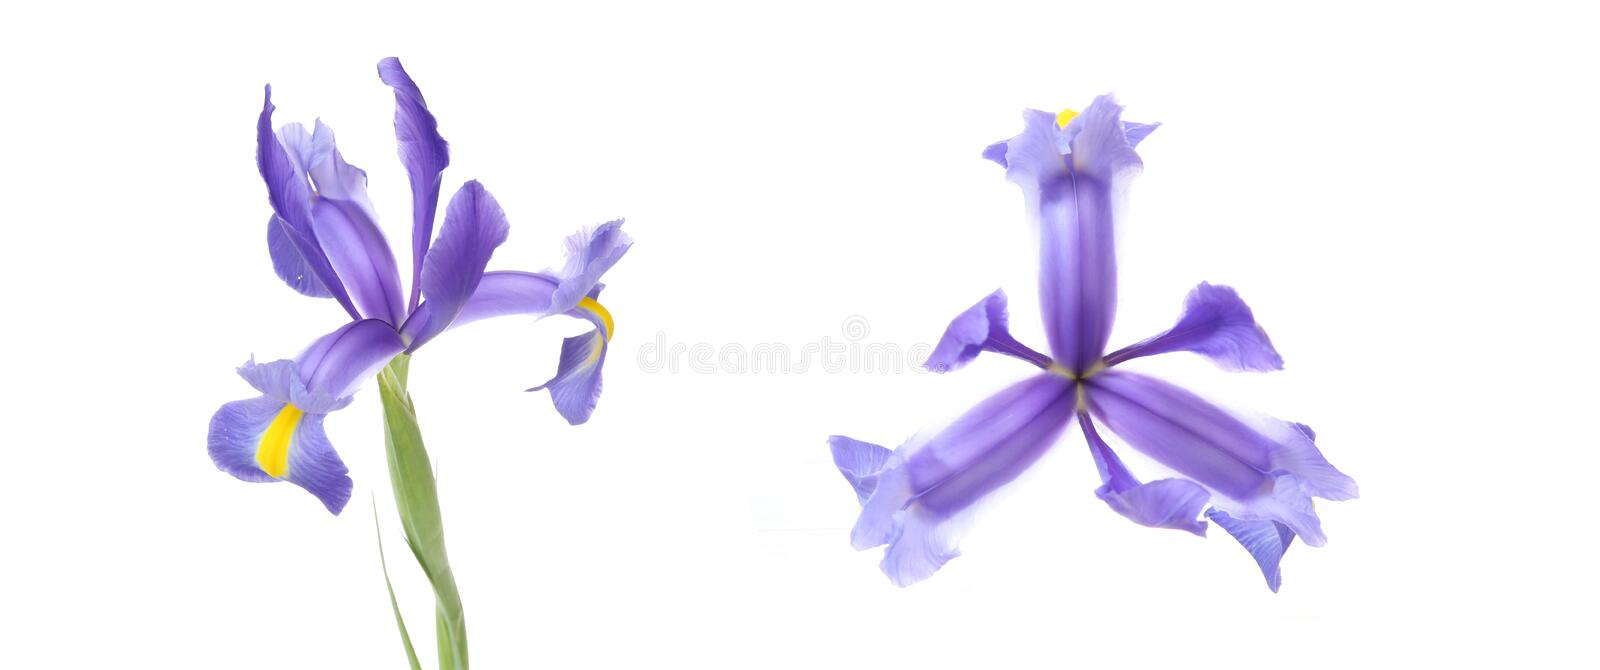 Flower head of iris in a white background royalty free stock photography